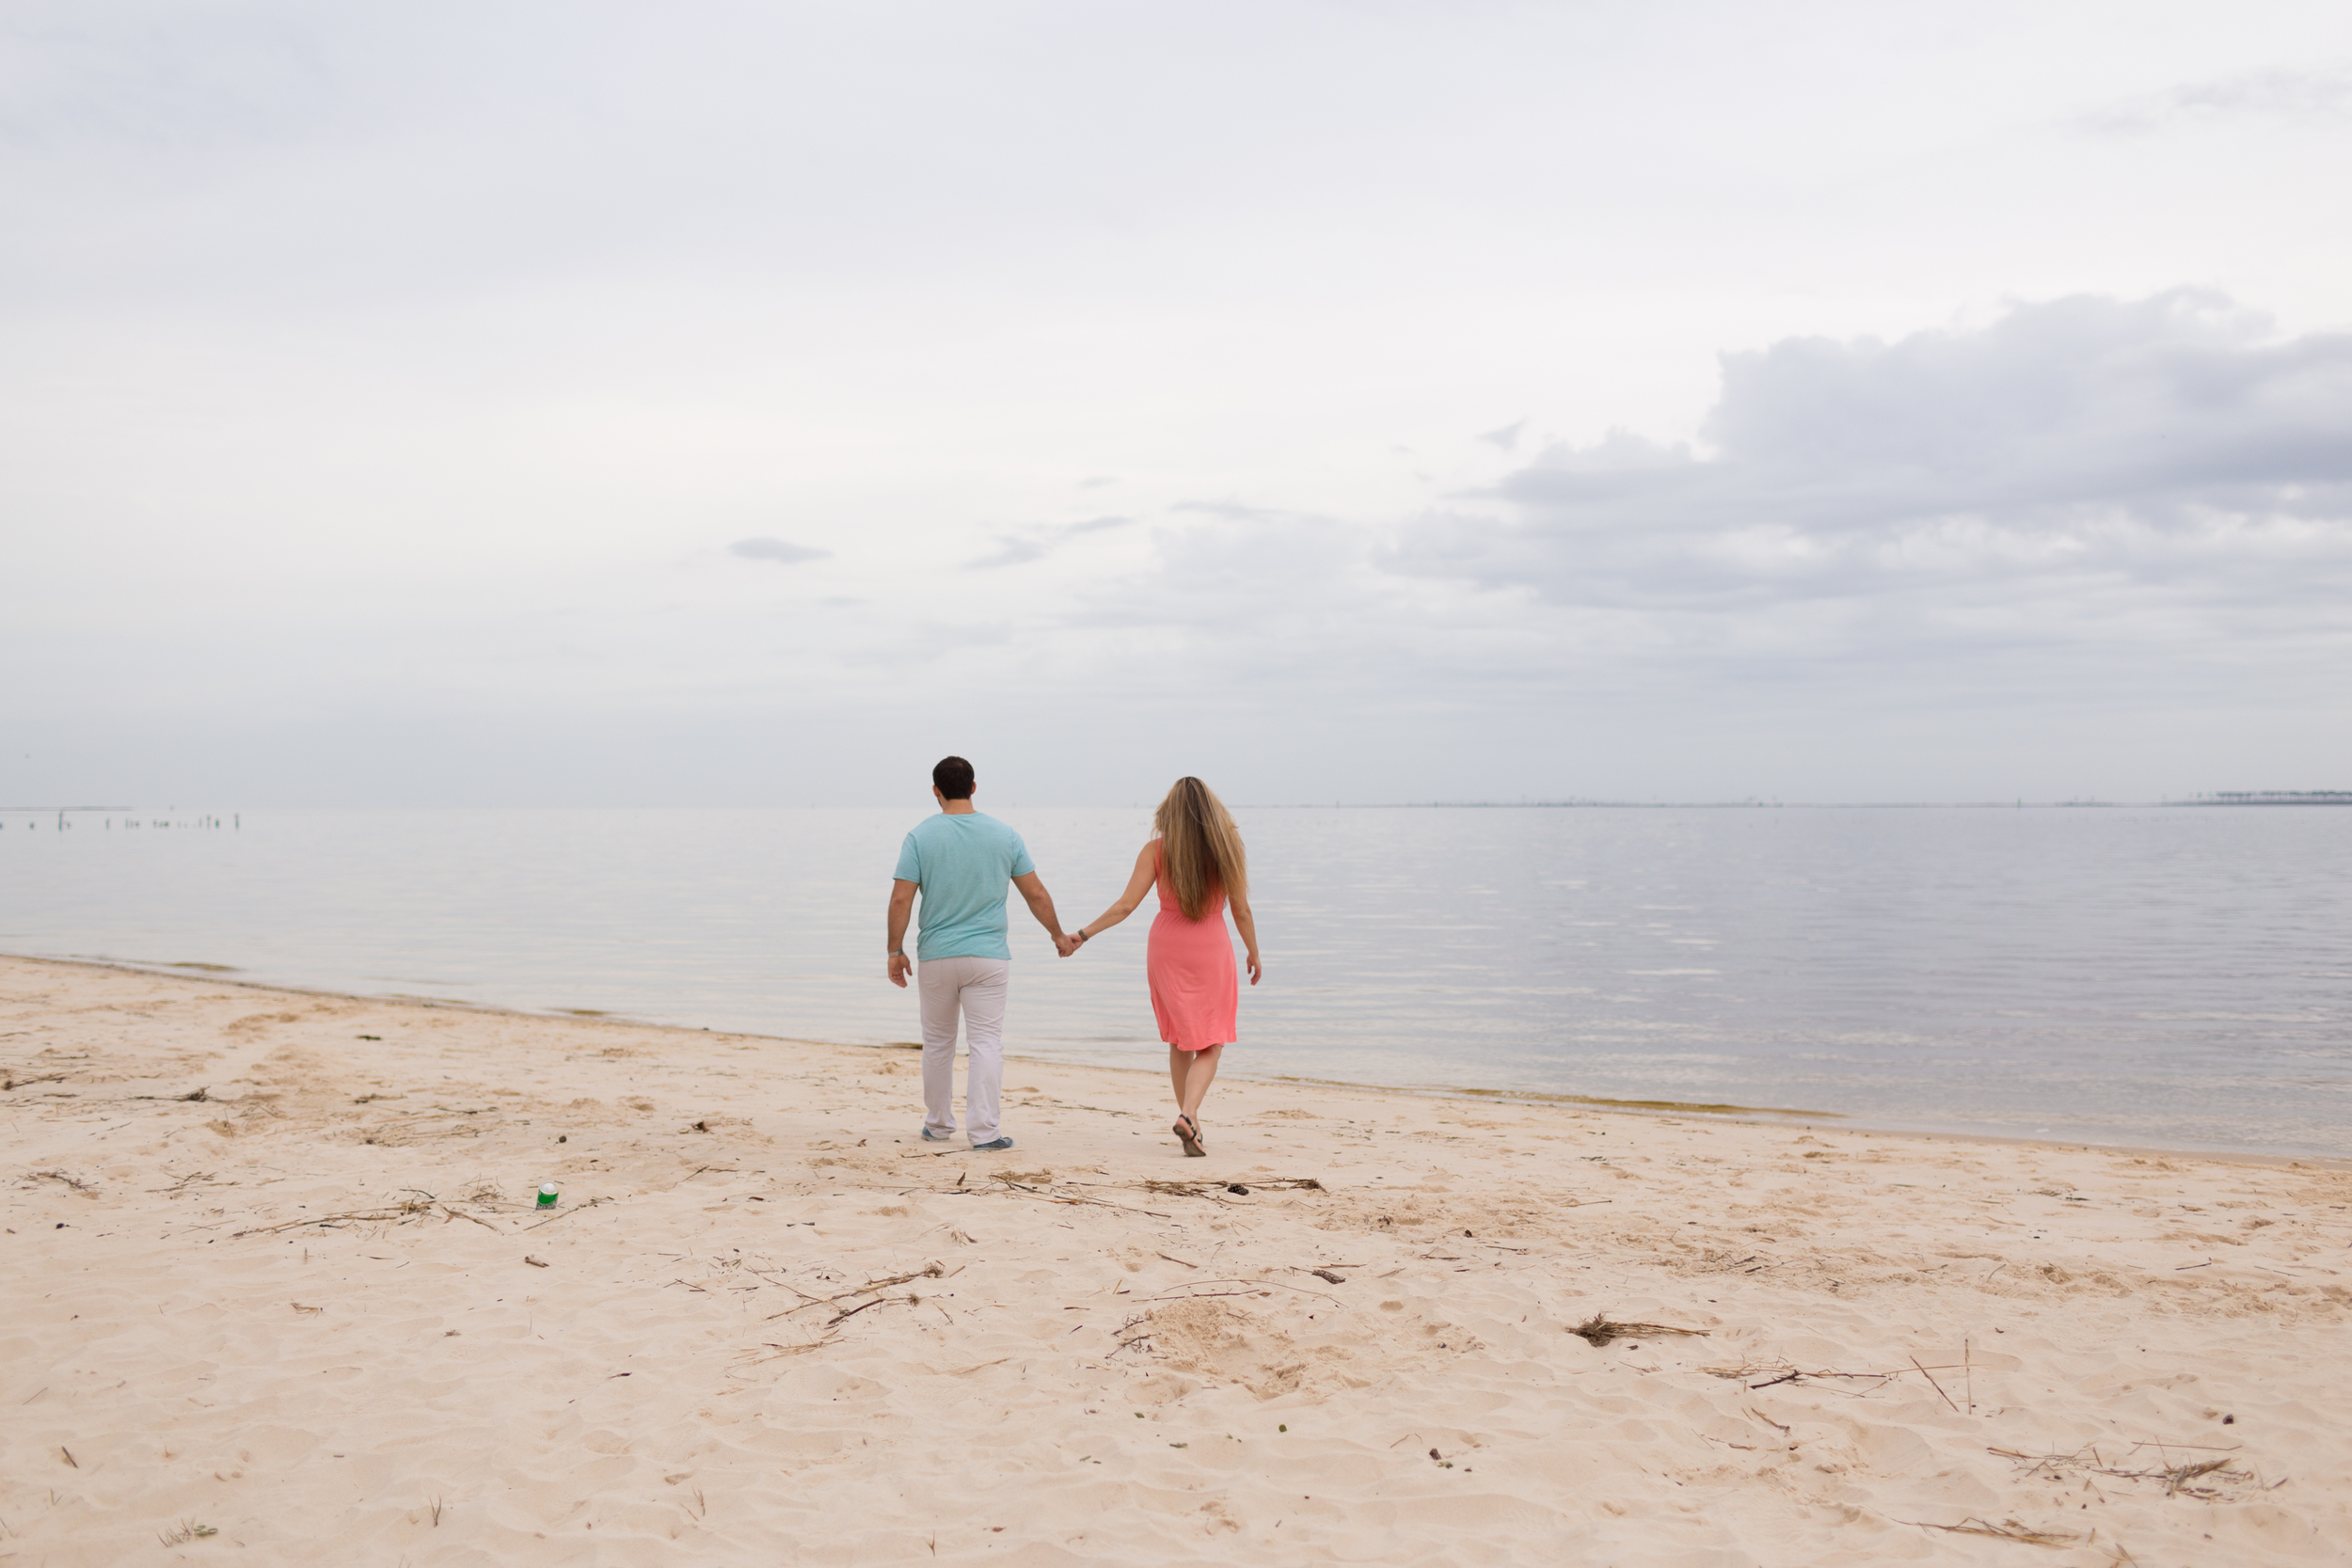 couple walking on beach holding hands on cloudy day